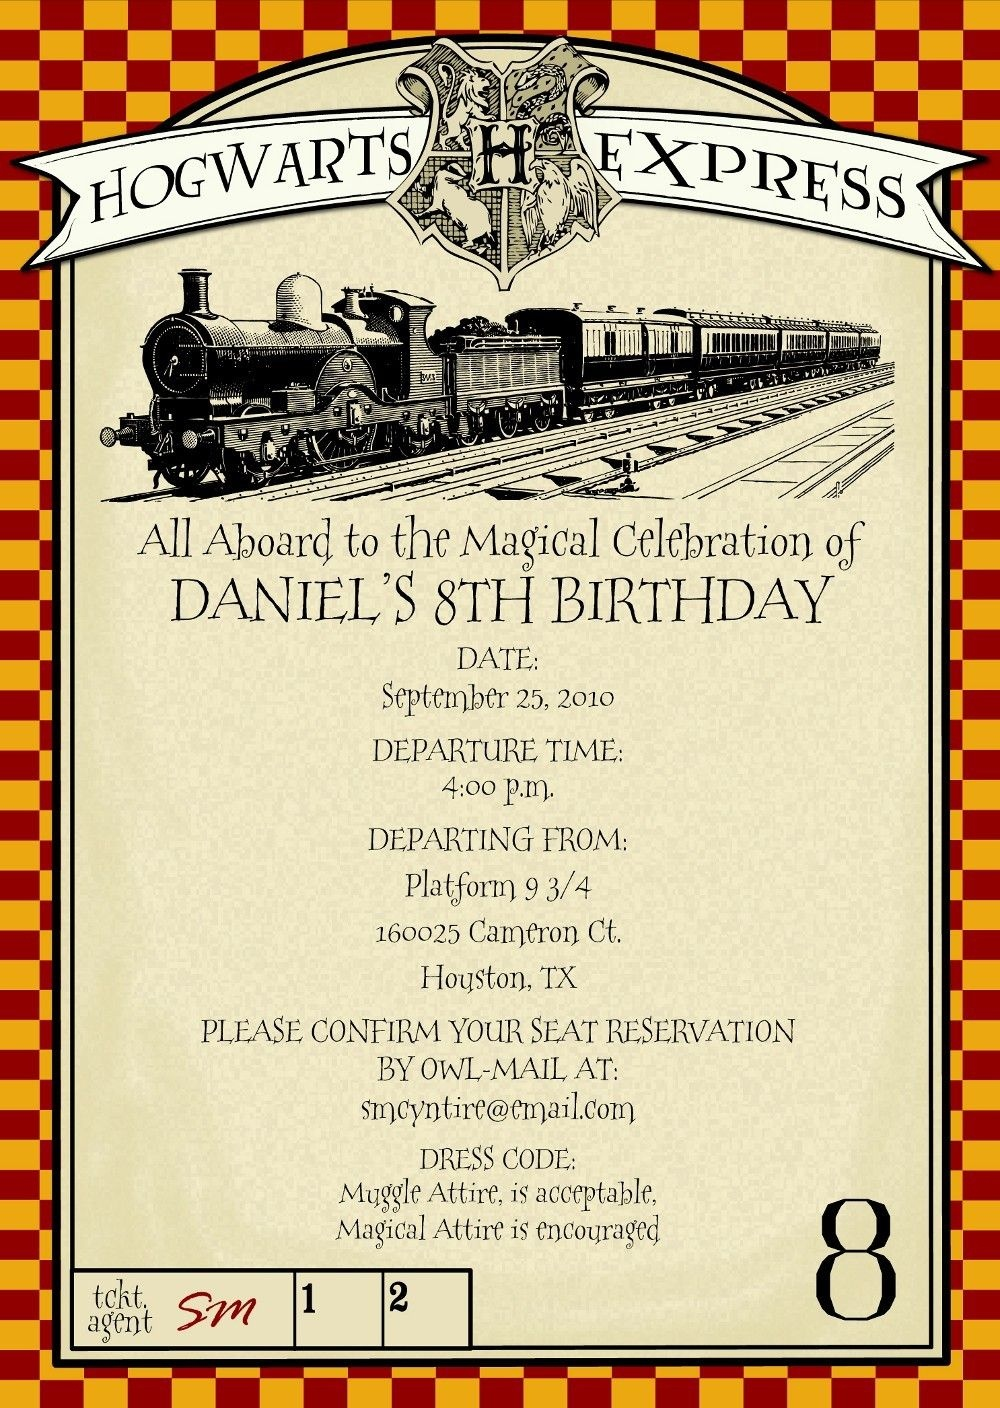 Harry Potter Party Invitations Free Printable | Things I Want - Harry Potter Birthday Invitations Free Printable